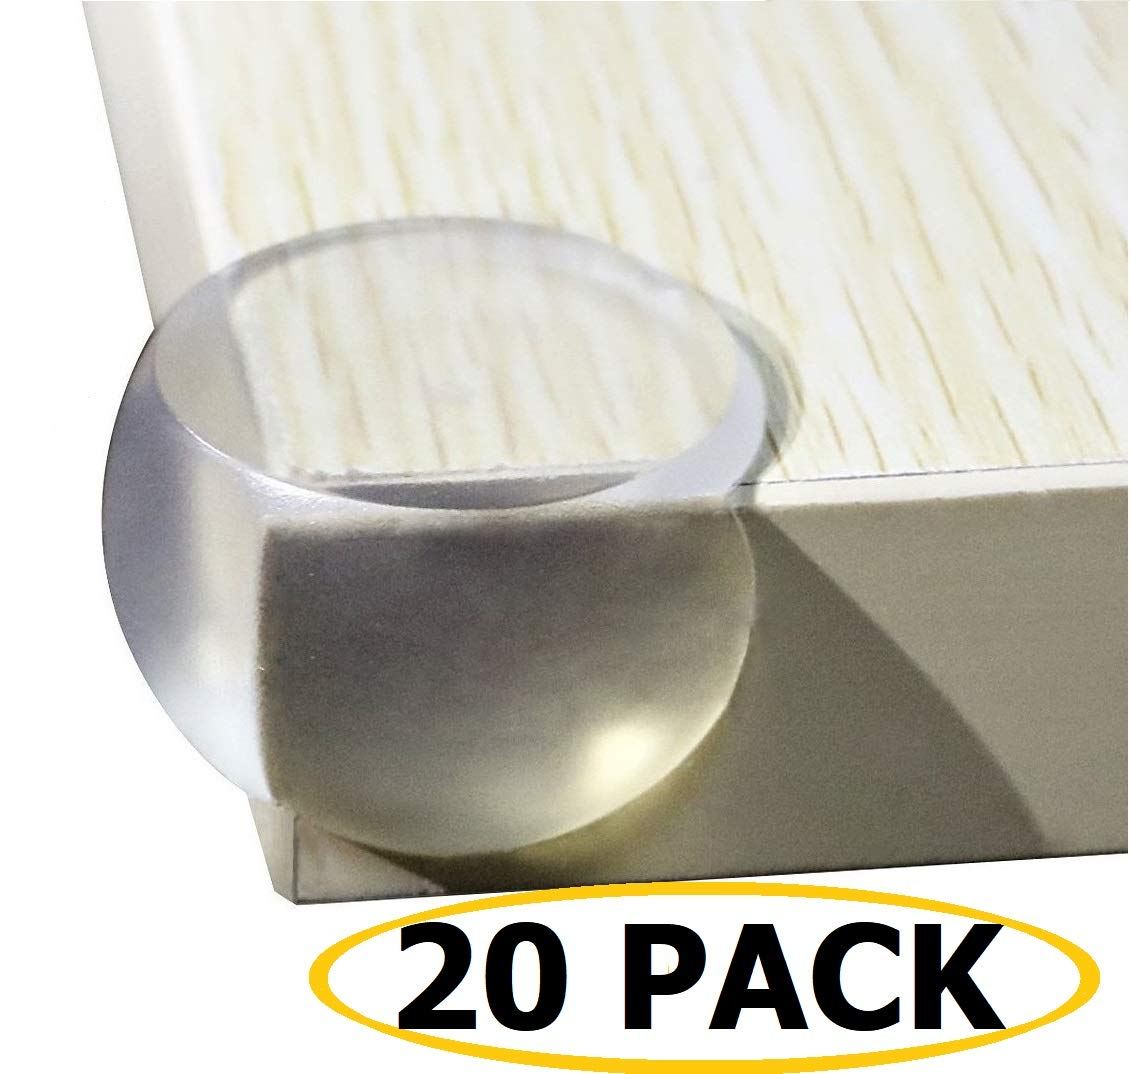 20 Pack | Baby proofing | Clear Corner Guards | Bumpers for Furniture | Small Clear Corner Protectors | Sharp Edge Protection RALPH.HALEY RHCCG01